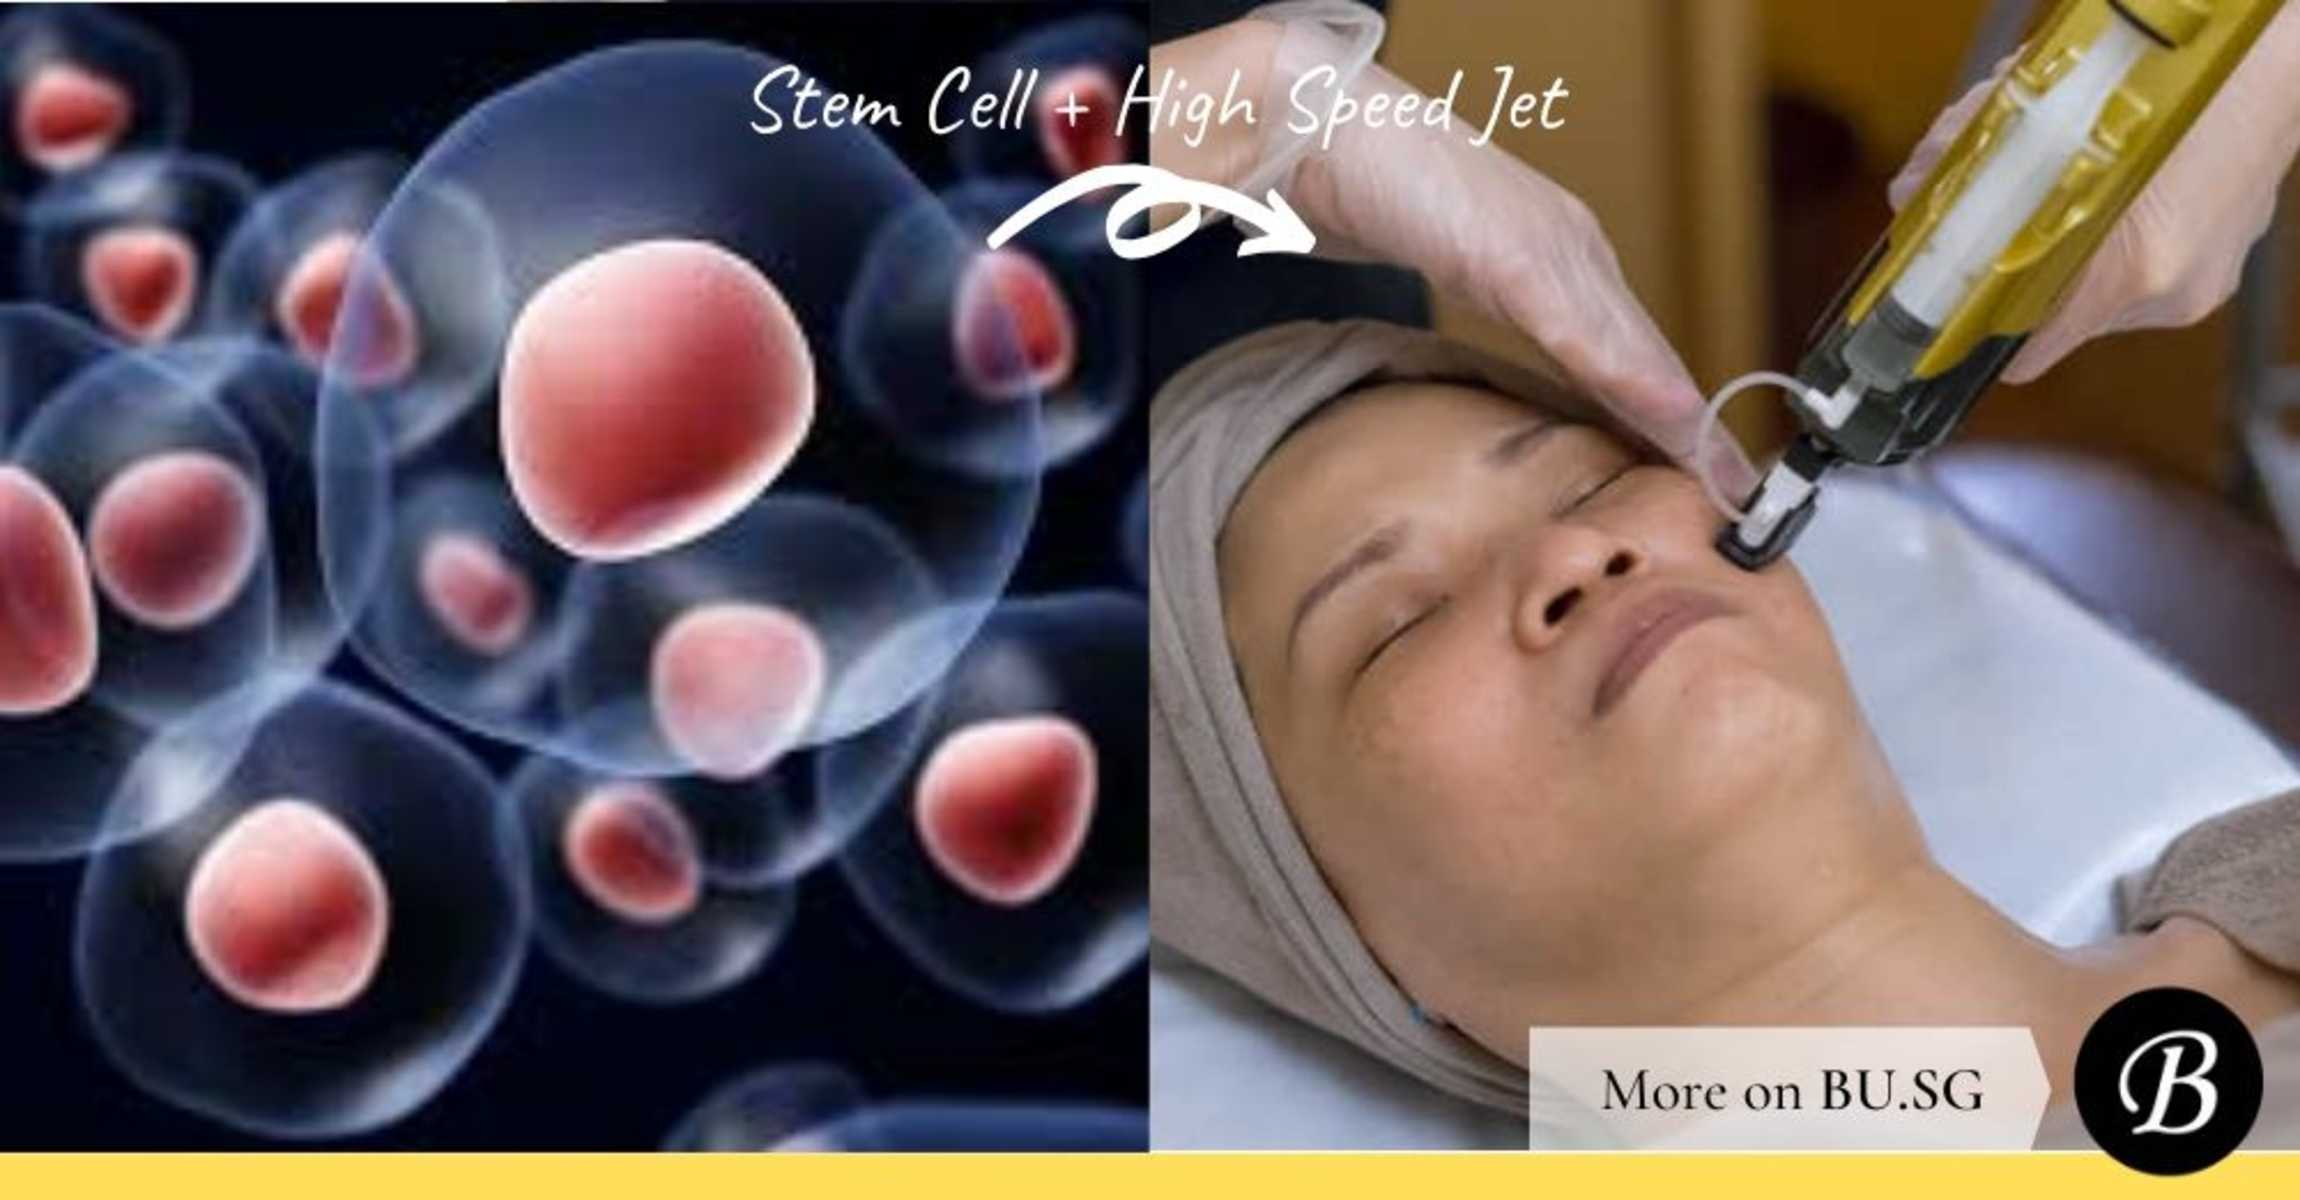 7 Reasons Why the Human Cultured Stem Cell Facial Produces Superhuman Results